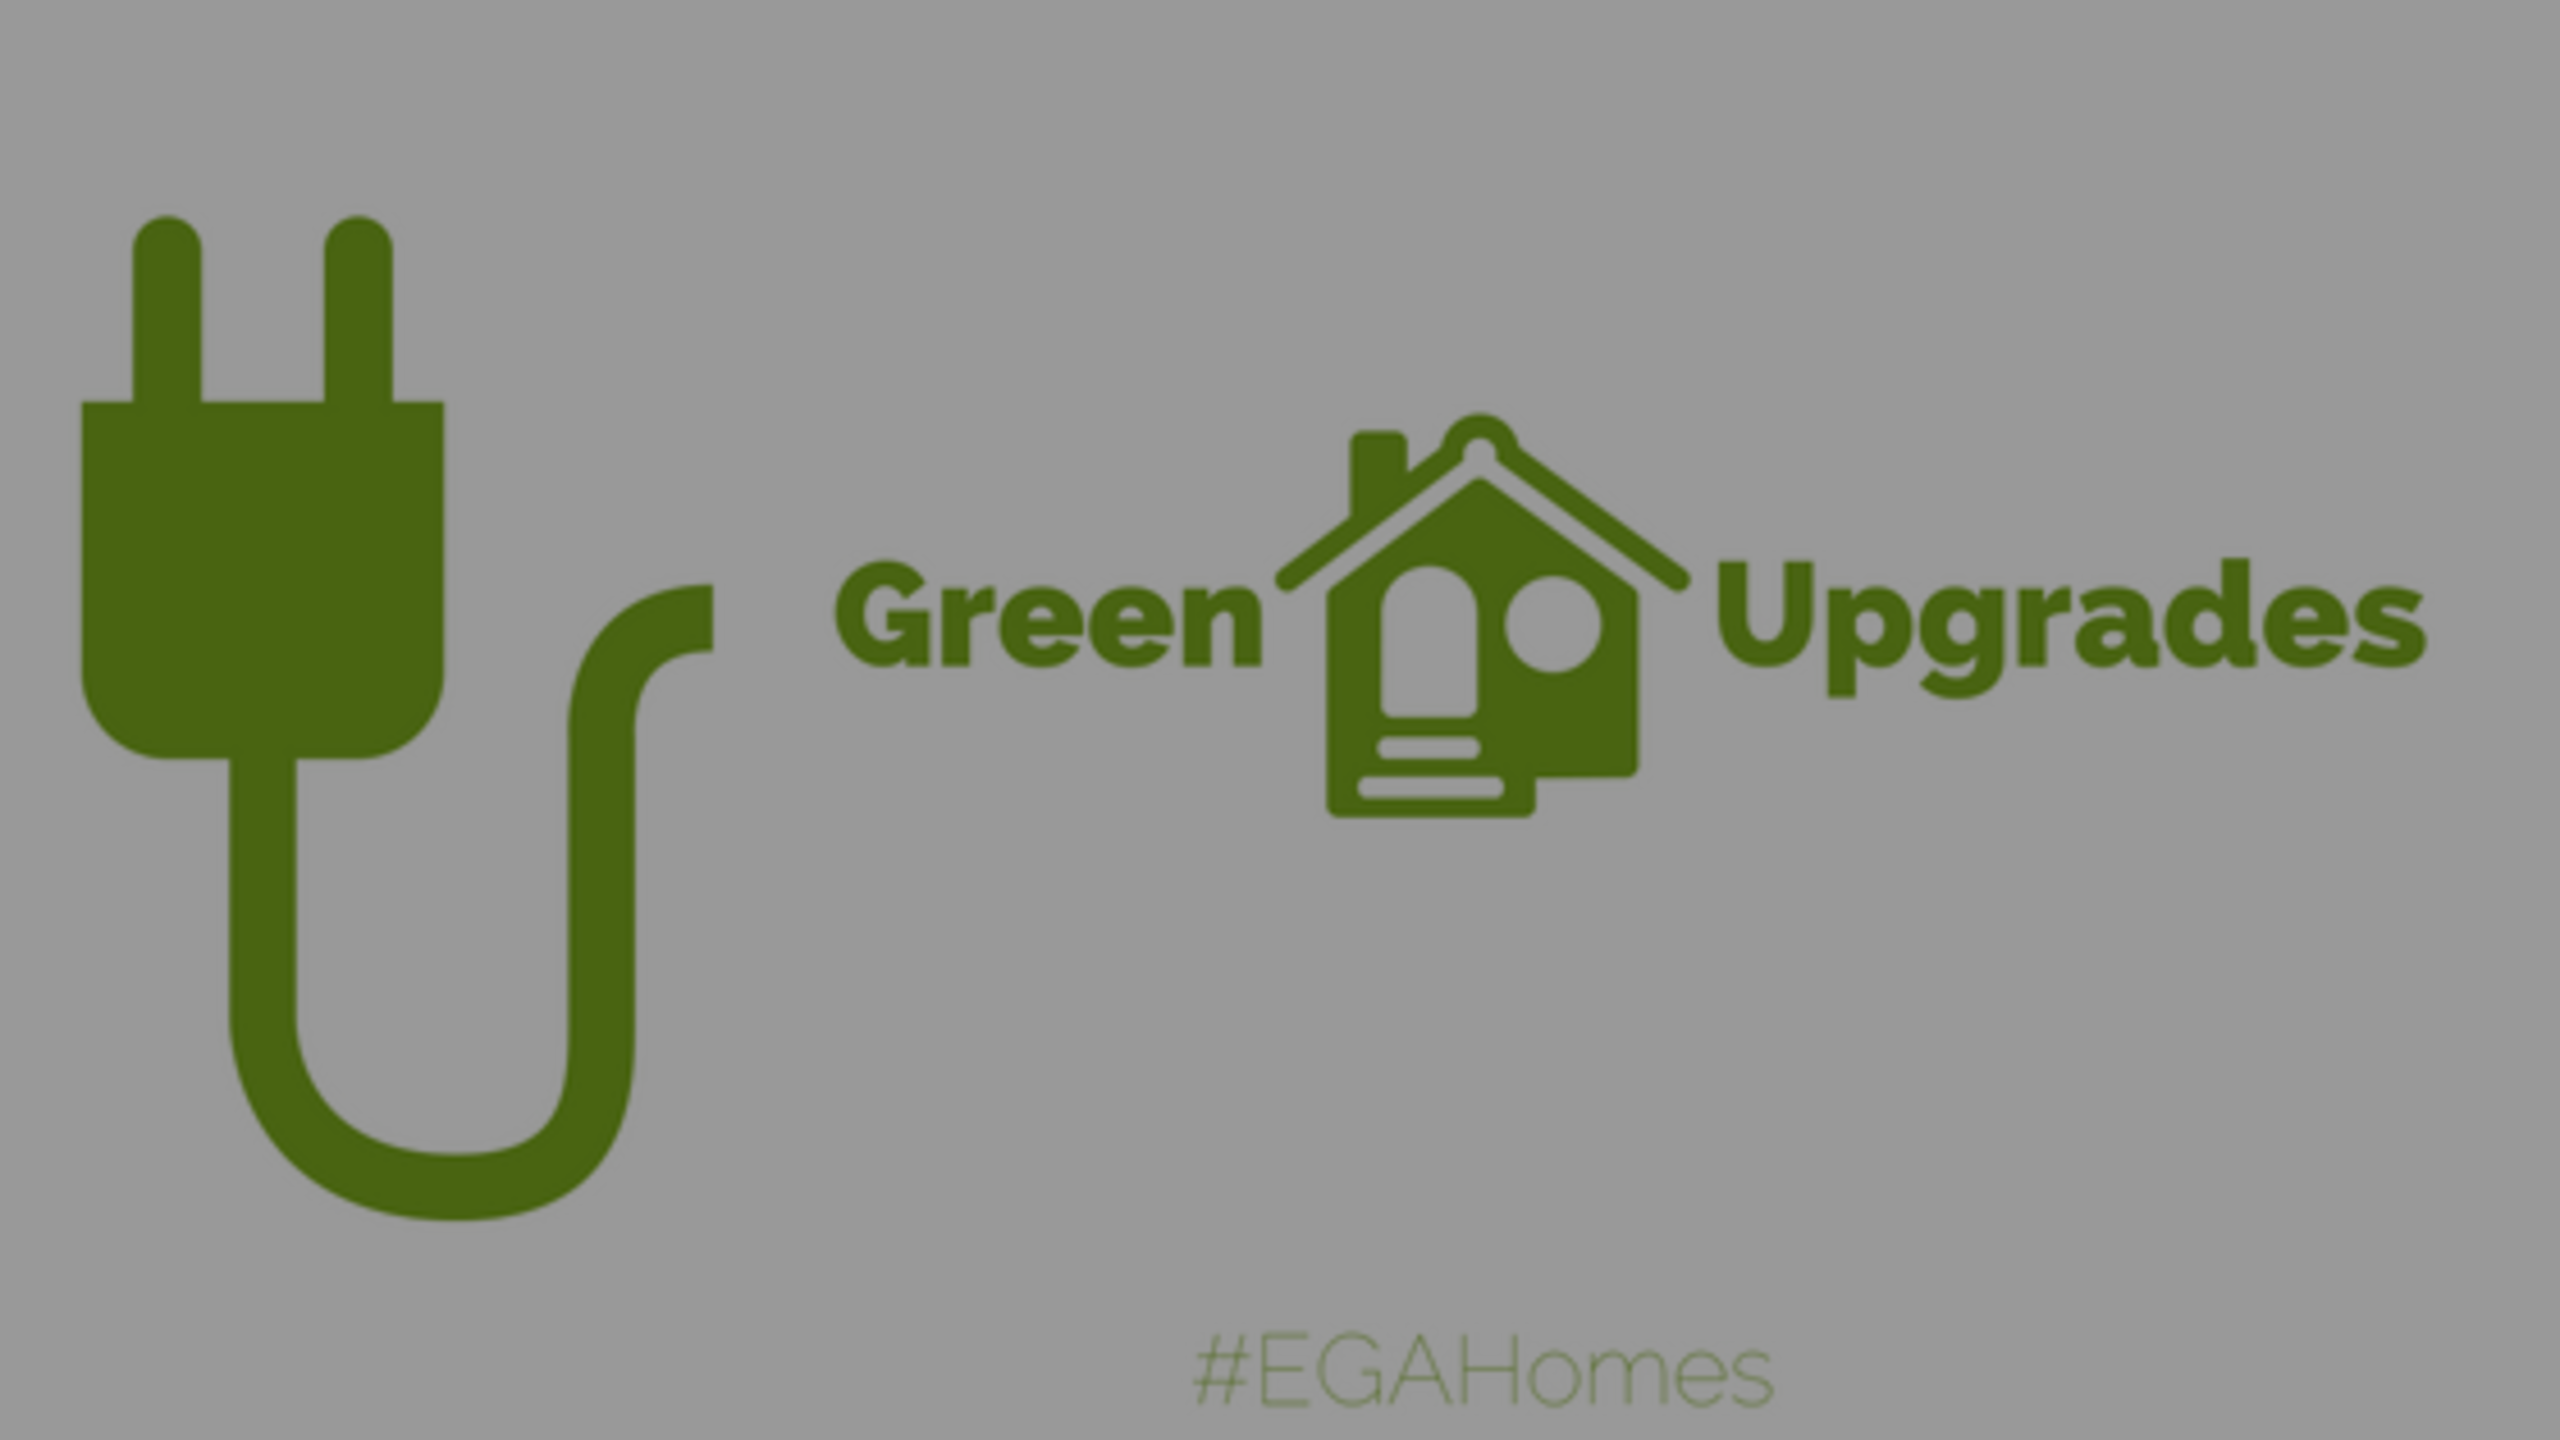 """""""Green Home"""" Upgrades Might Give Real Value"""